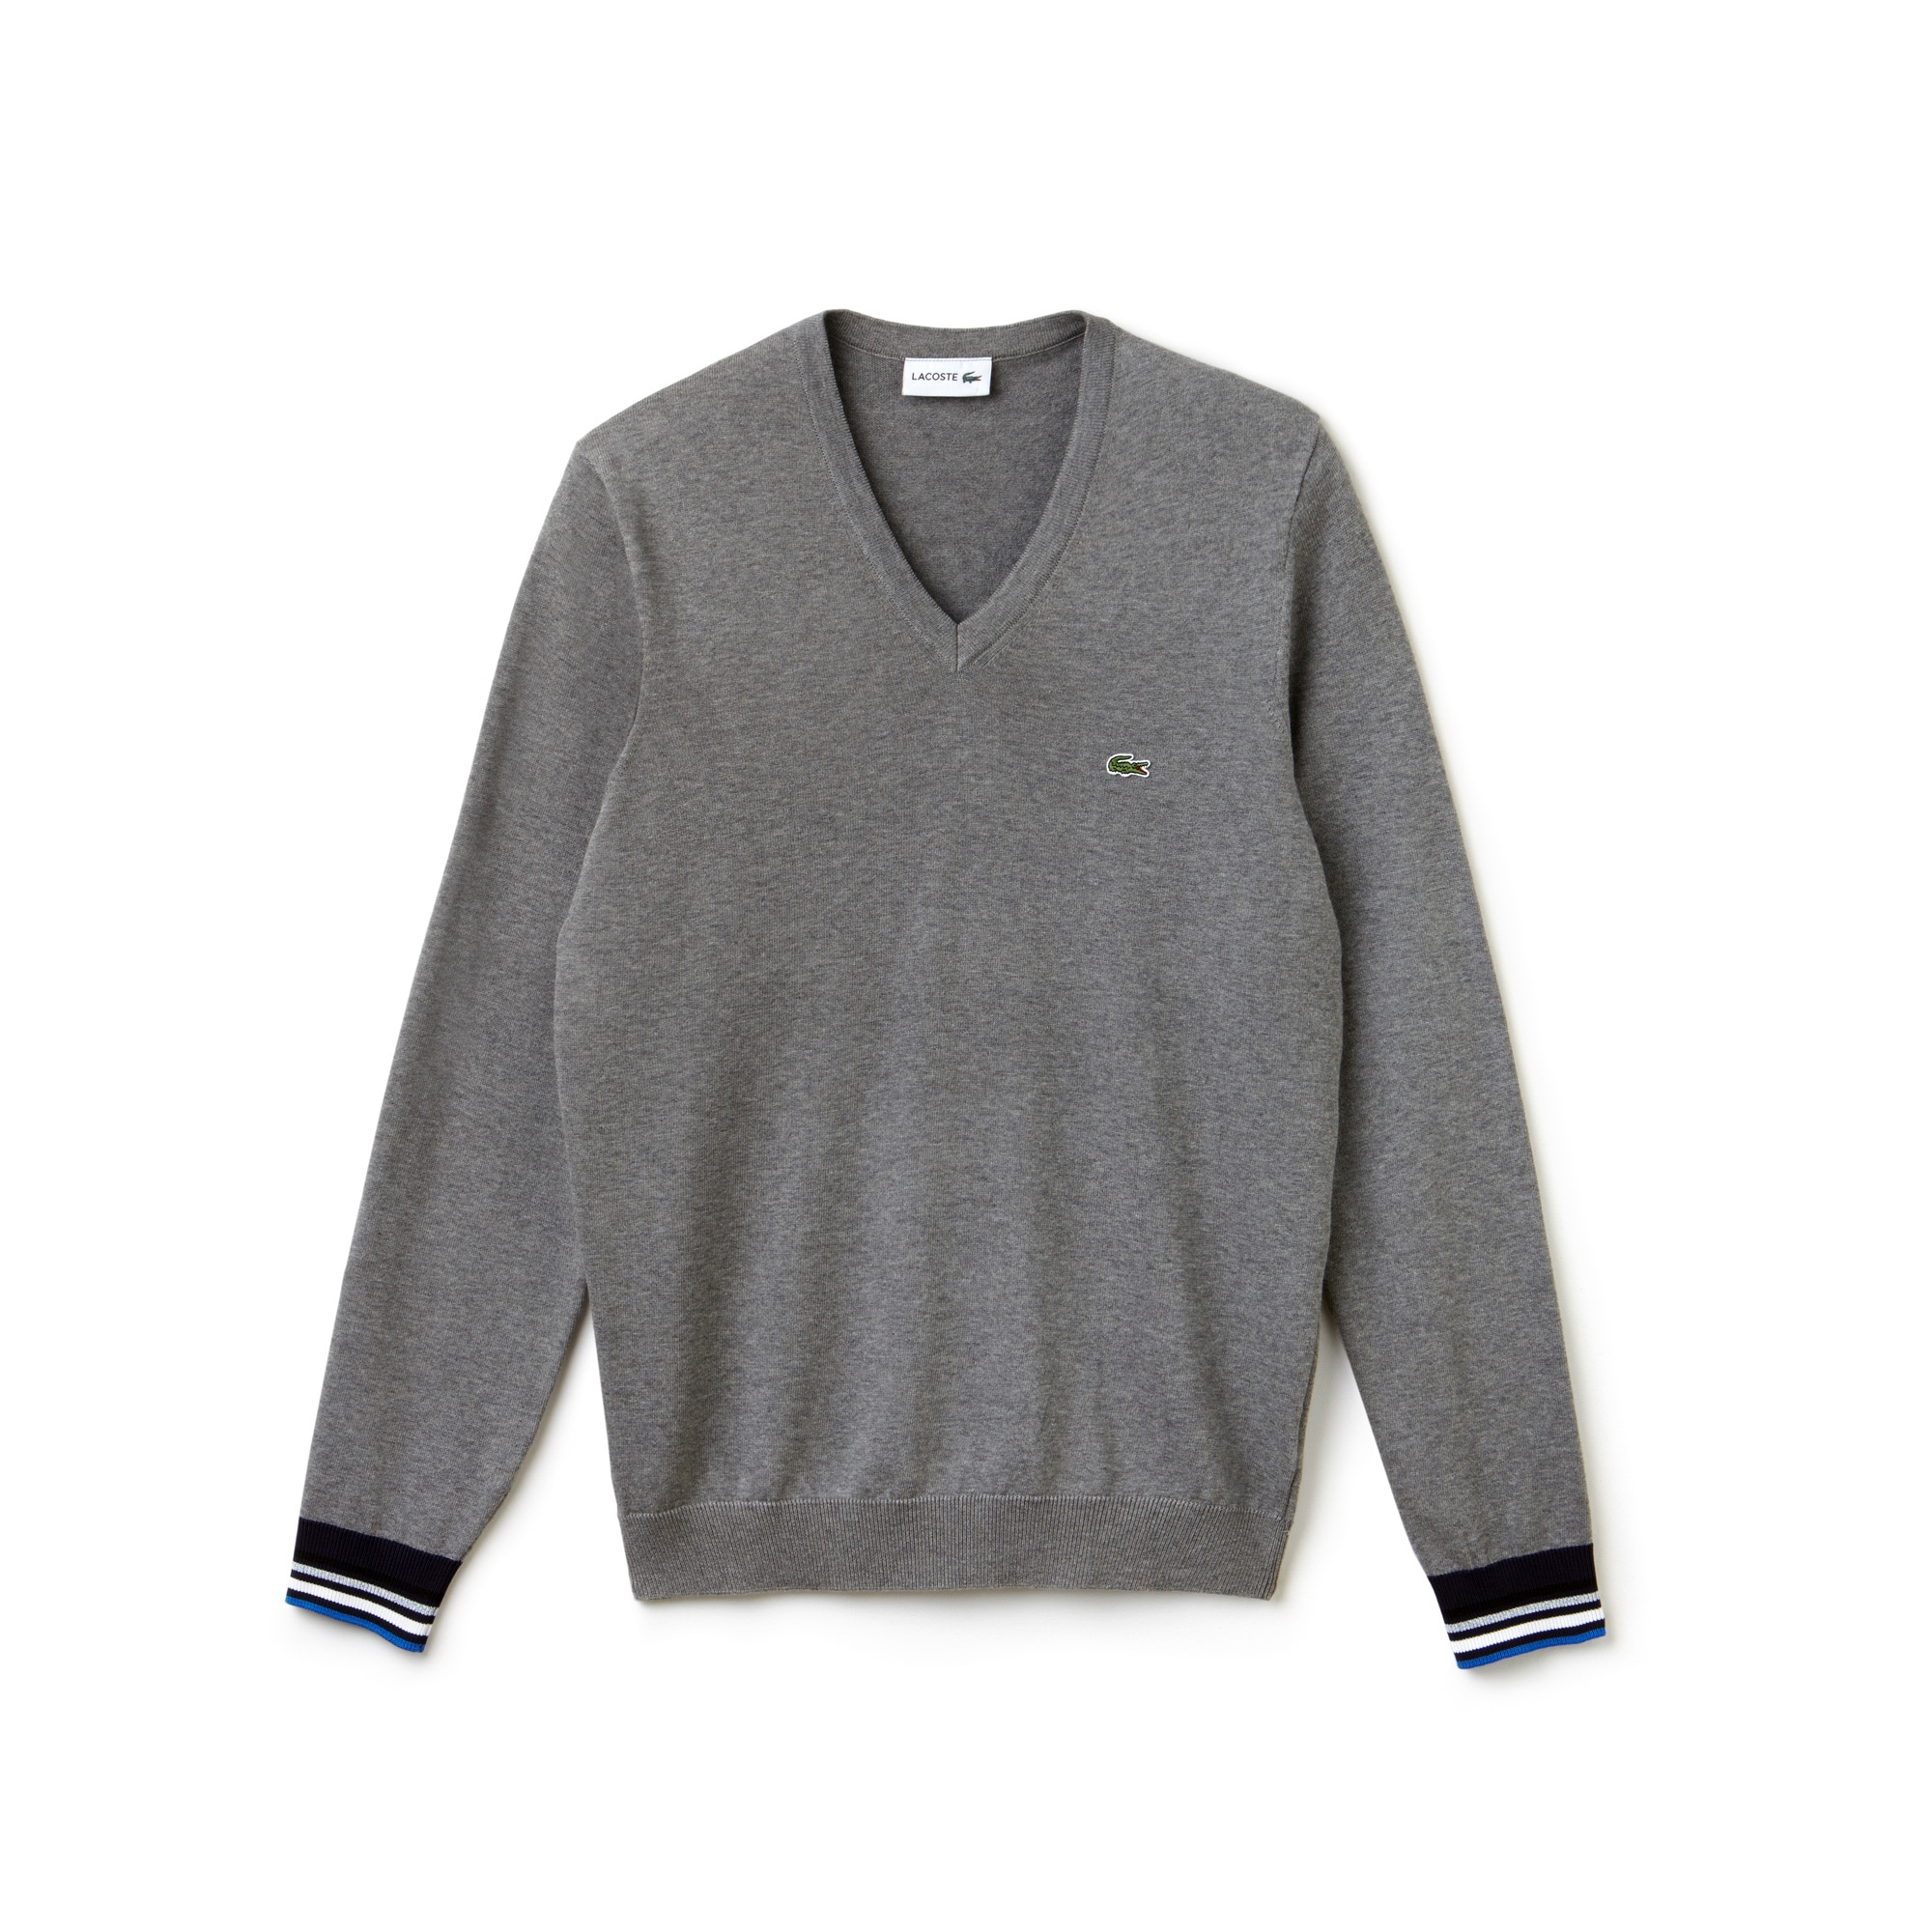 Men's V-neck Contrast Finish Jersey Sweater